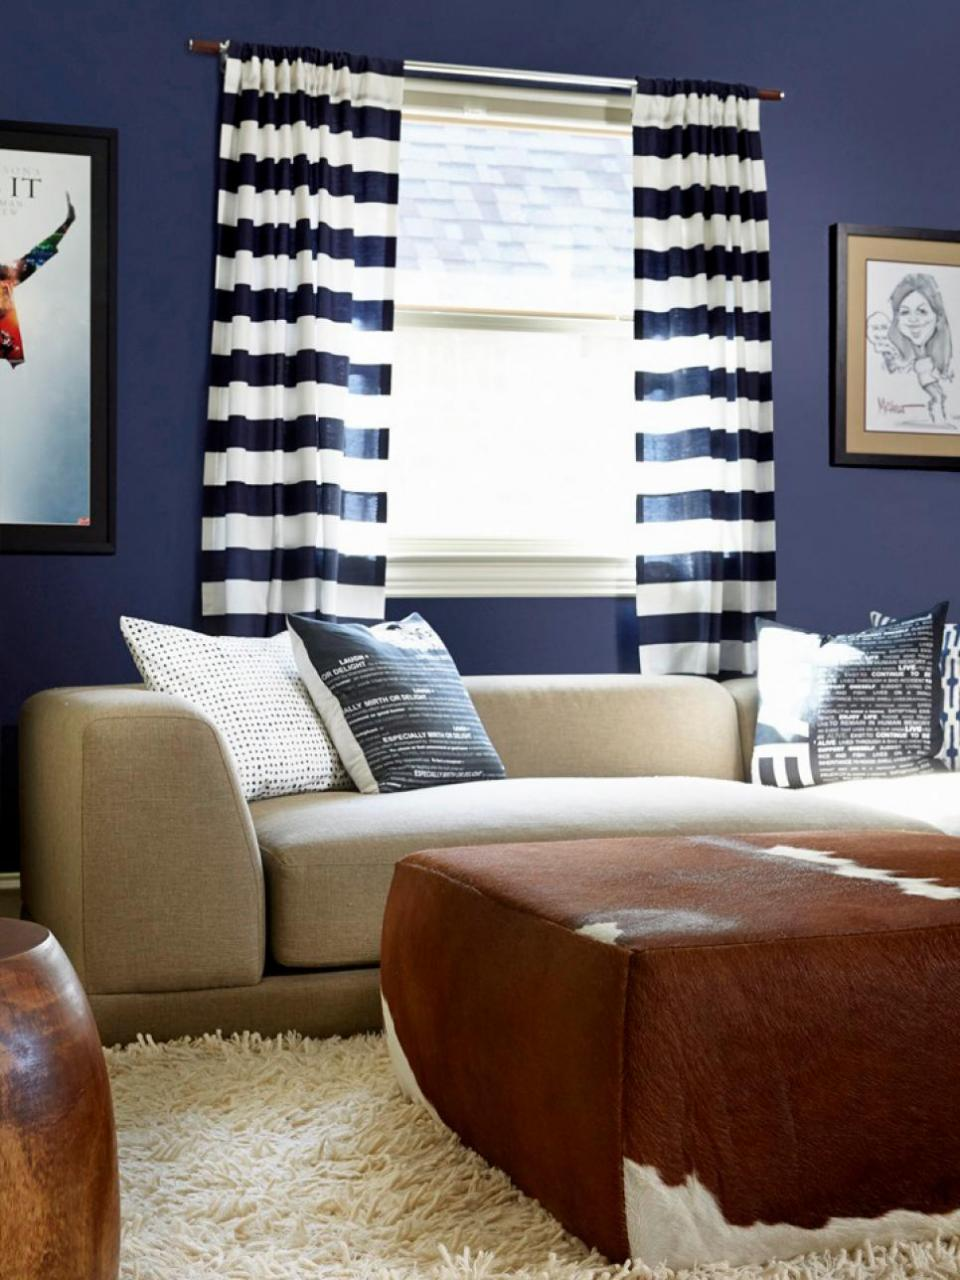 Designer lindsey coral harper covered the wall in a lacquered navy blue and added bits of brown with wooden frames on the side chairs and art